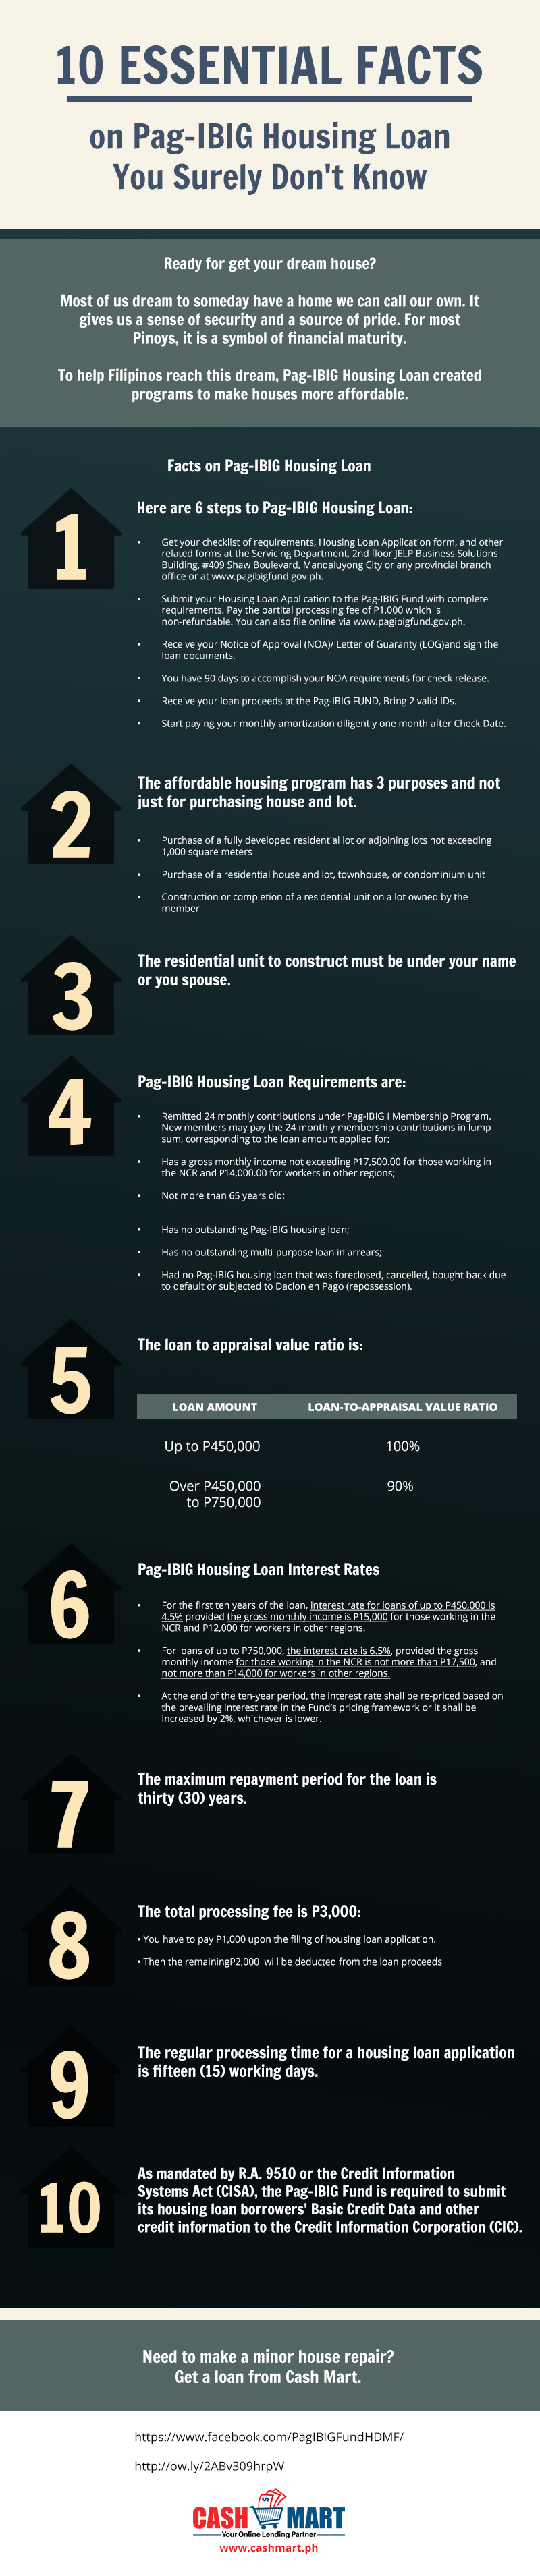 10-essential-facts-on-pag-ibig-housing-loan-you-surely-dont-know